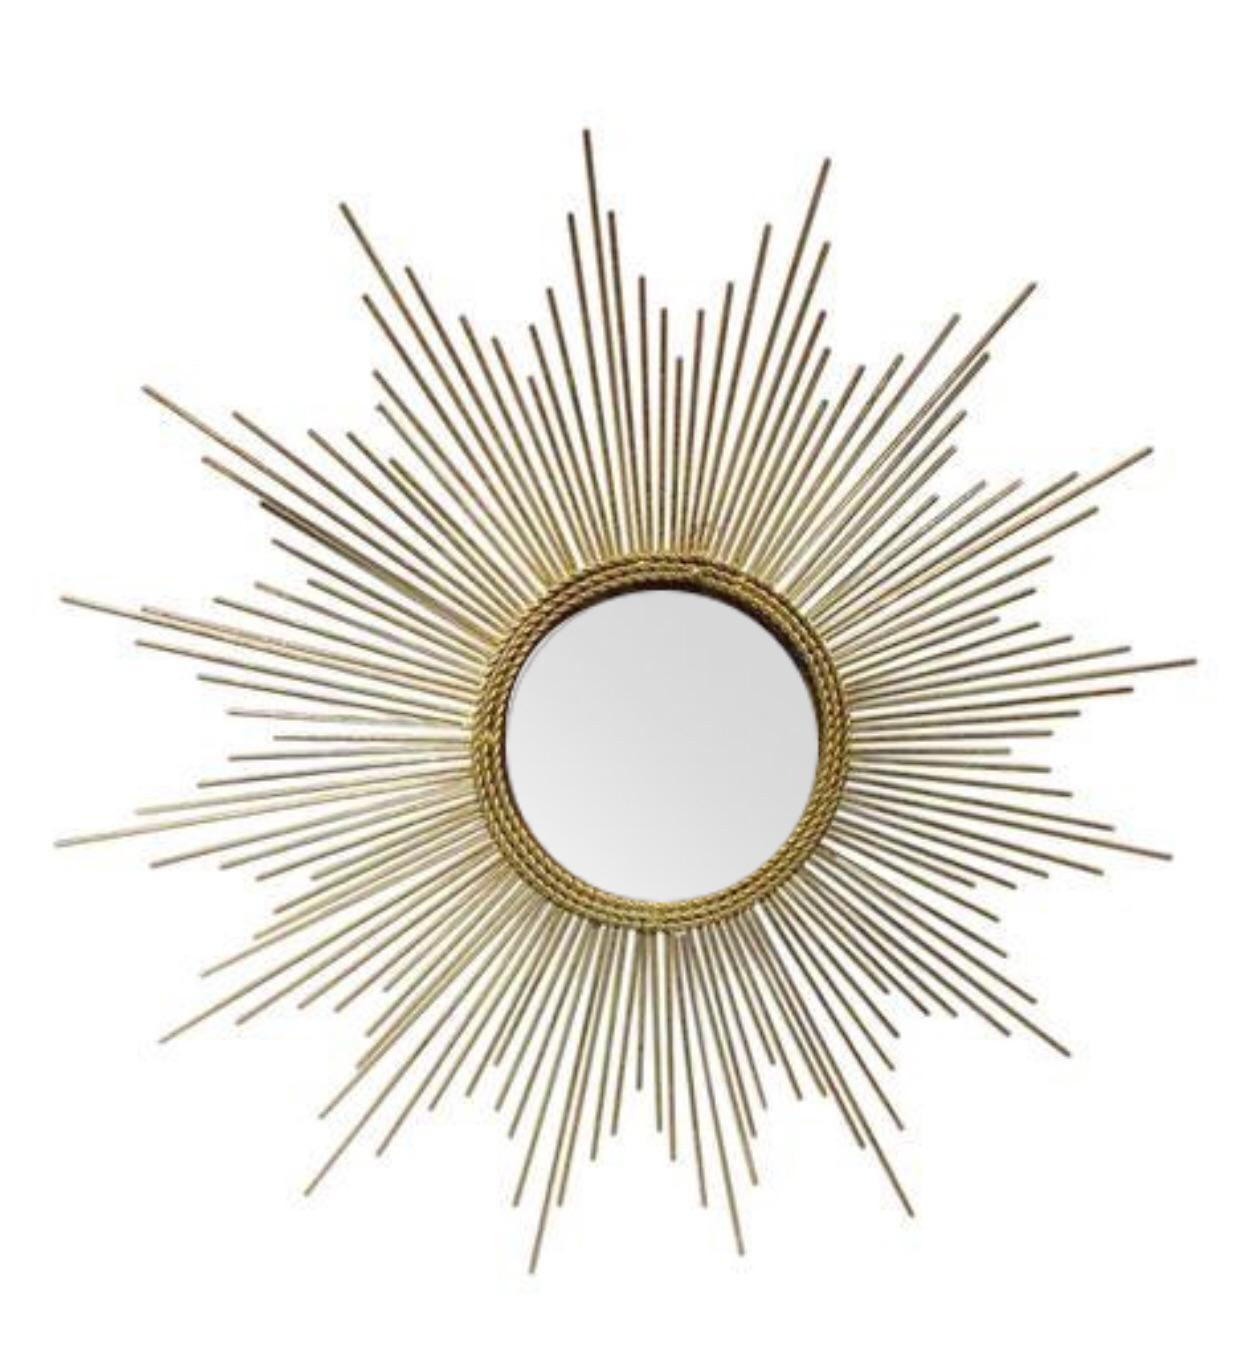 Art Deco Style Gold Starburst Mirror - Image 7 of 7